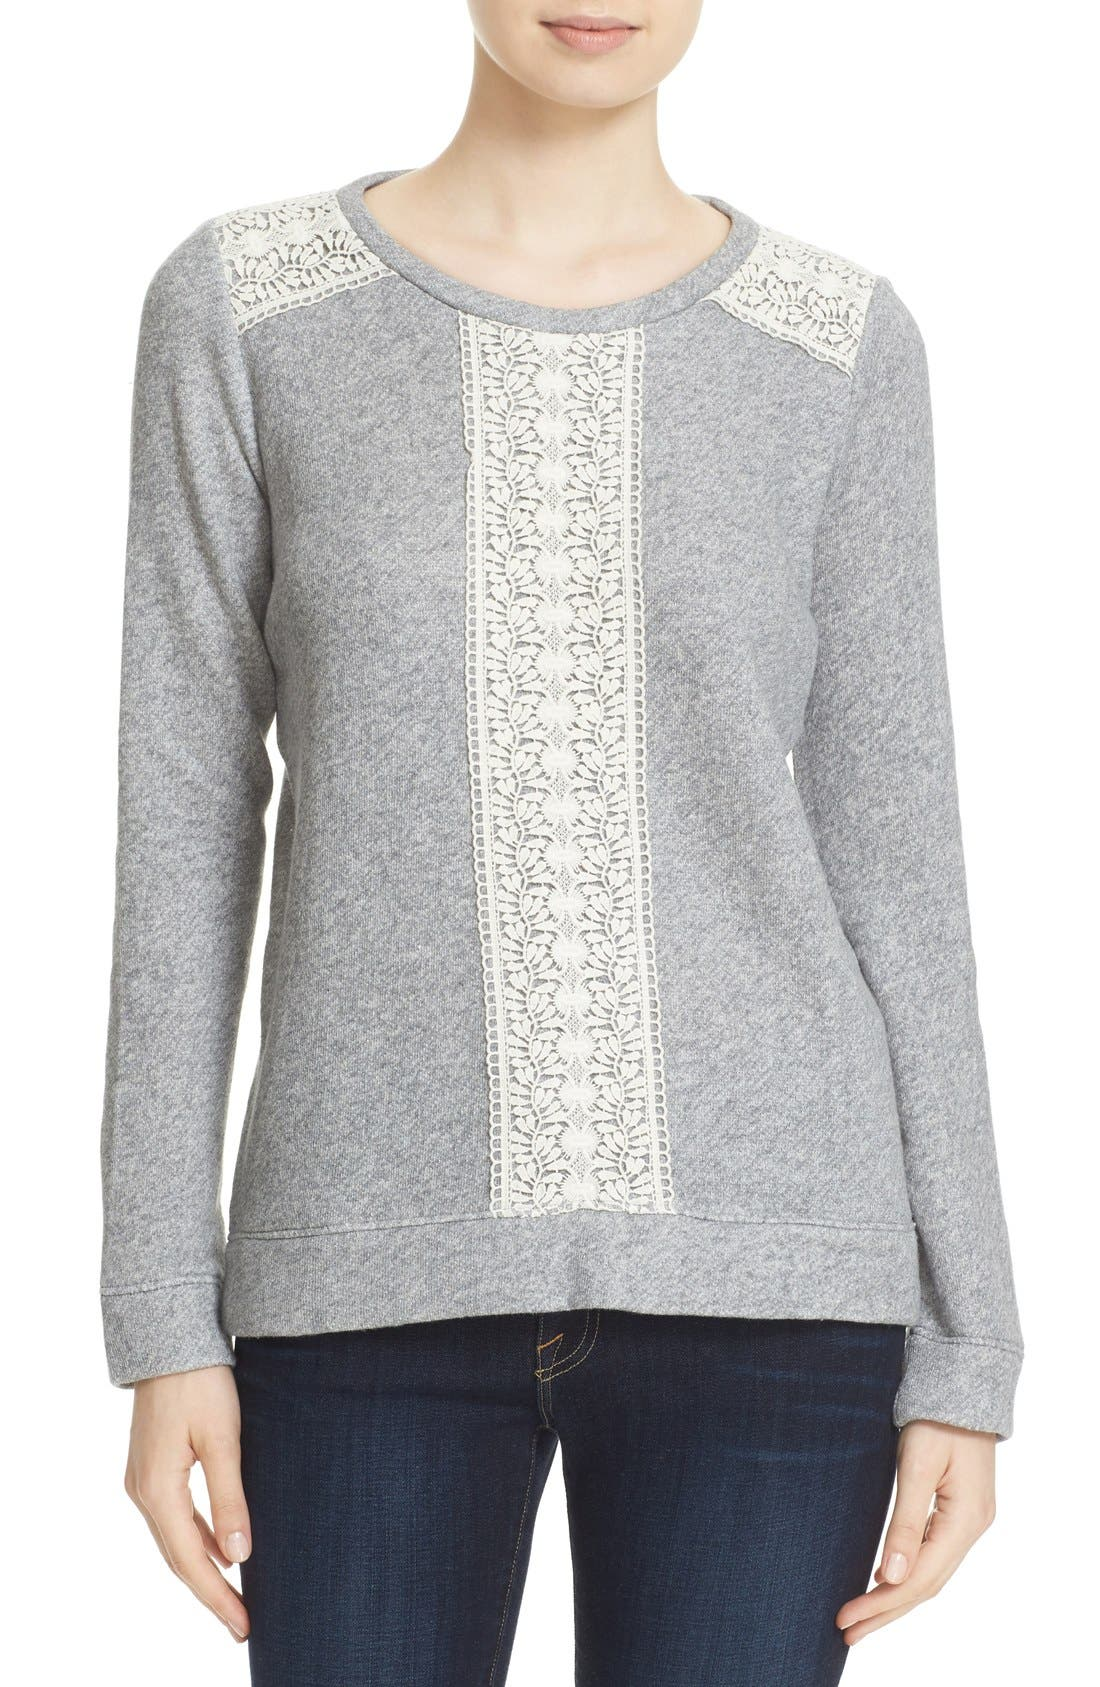 Alternate Image 1 Selected - Soft Joie Crewneck Lace Trim Sweater